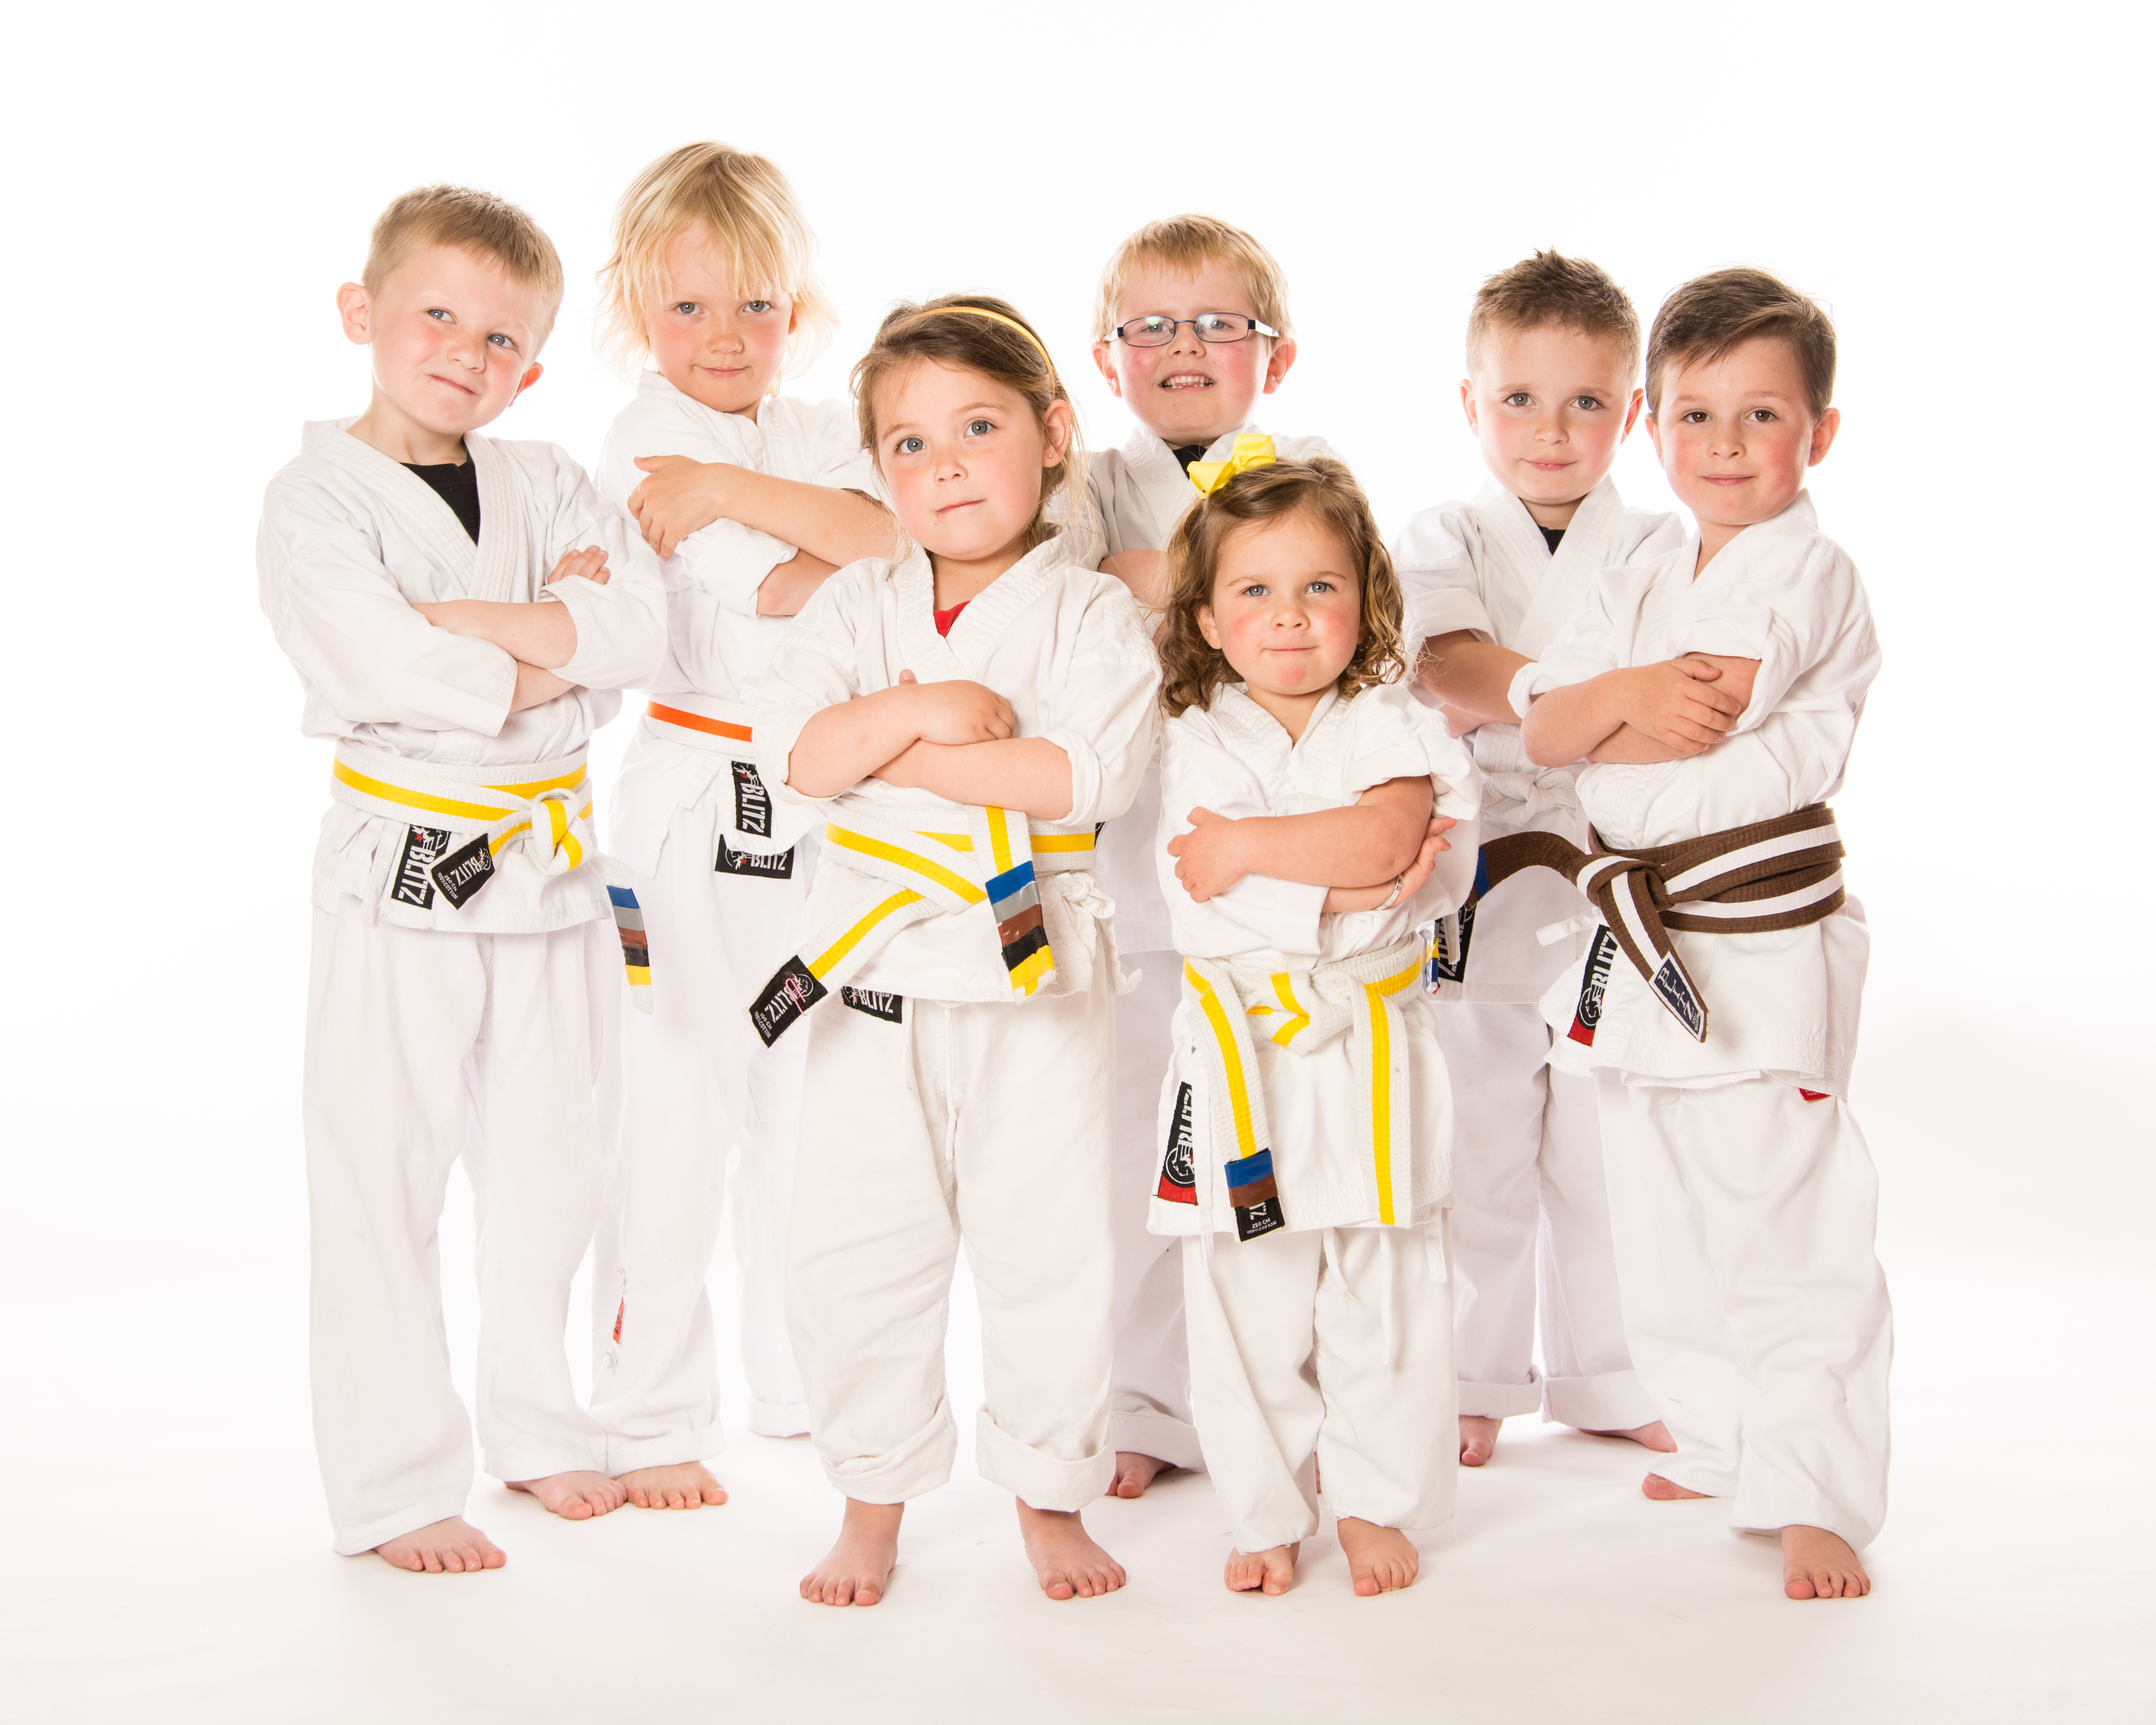 benefits of karate Benefits for adults martial arts training for adults is the only program that strengthens all aspects of your health and fitness, makes you mentally stronger and teaches you how to protect yourself and your loved ones - and it has been for thousands of years.